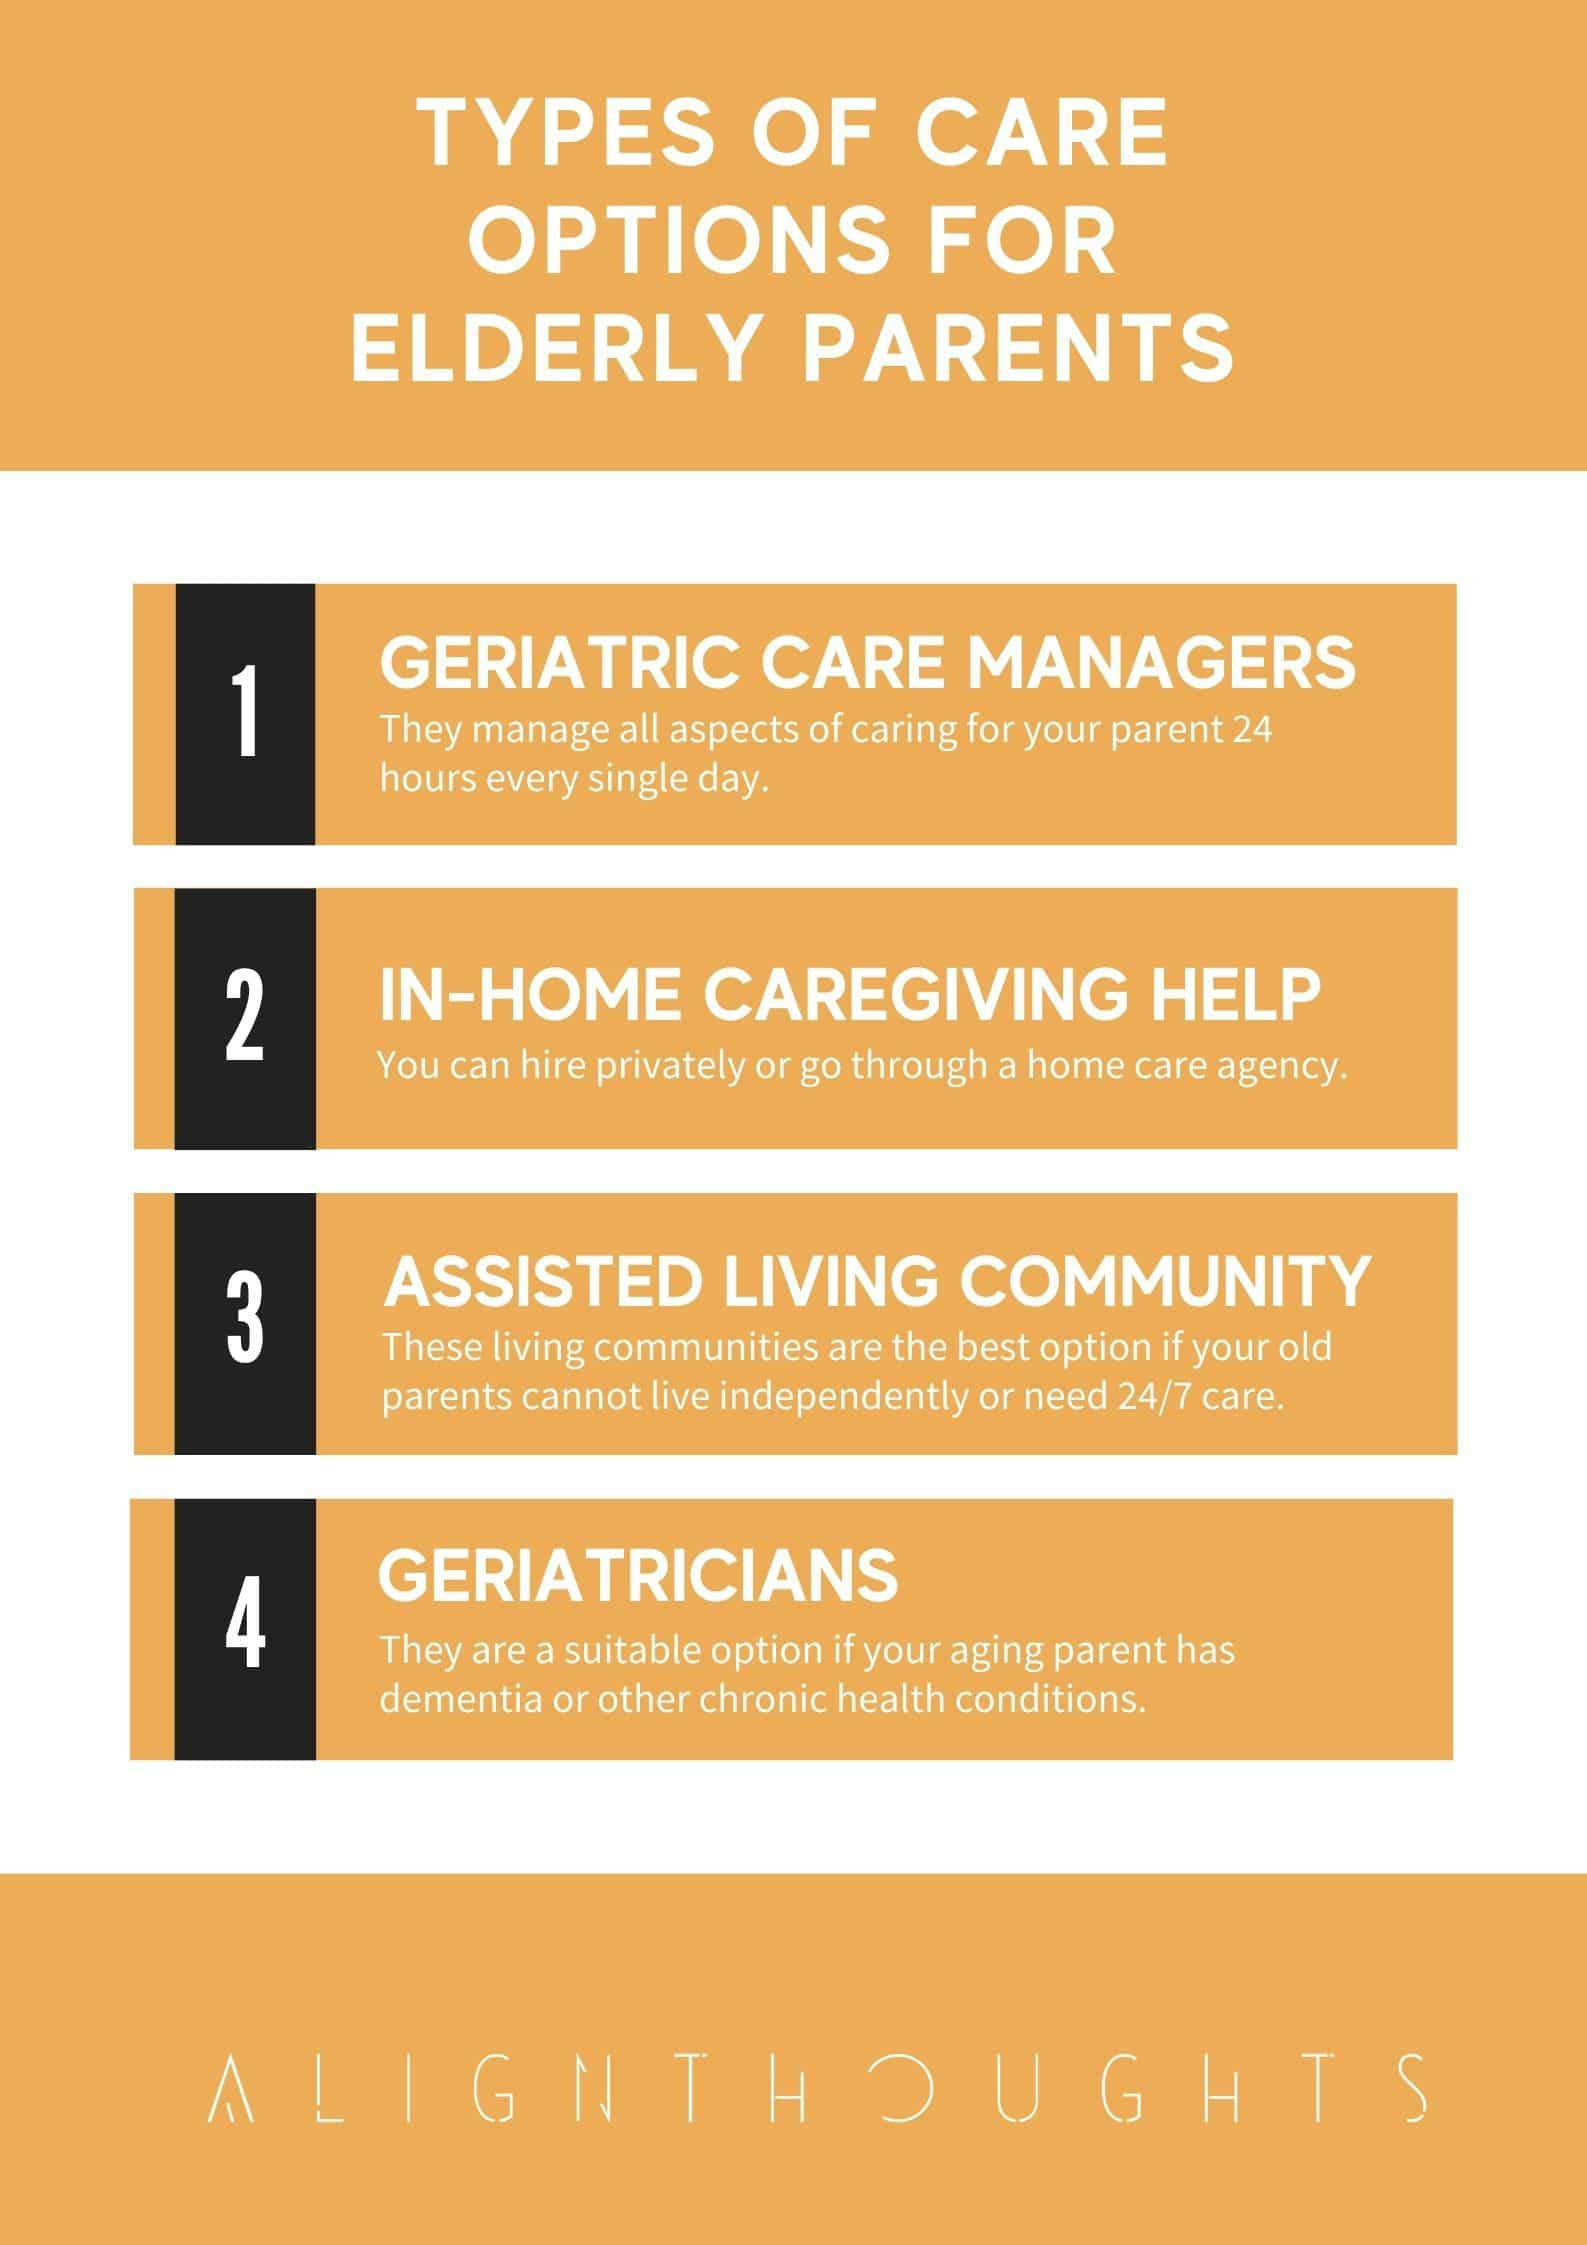 Types of Care Options For Elderly Parents-alignthoughts